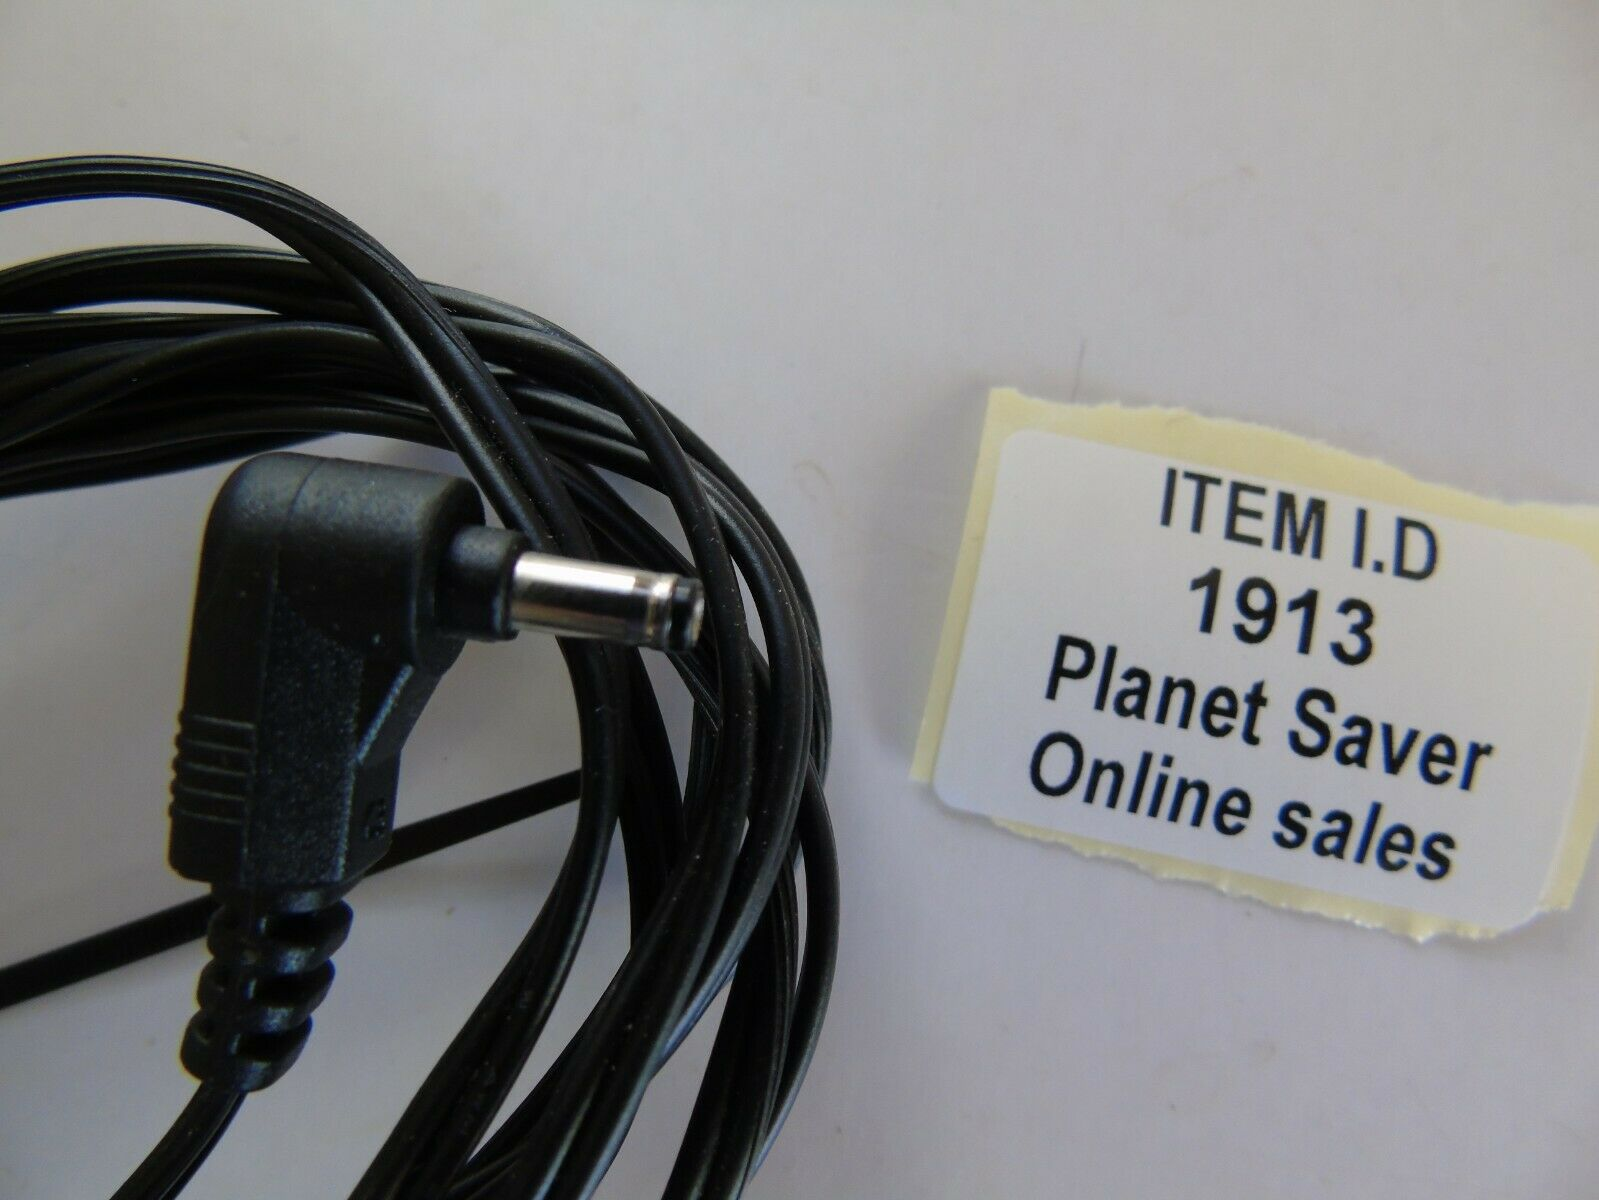 5V / 1.2A power supply/charger 3.4mm Universal power supply #1913